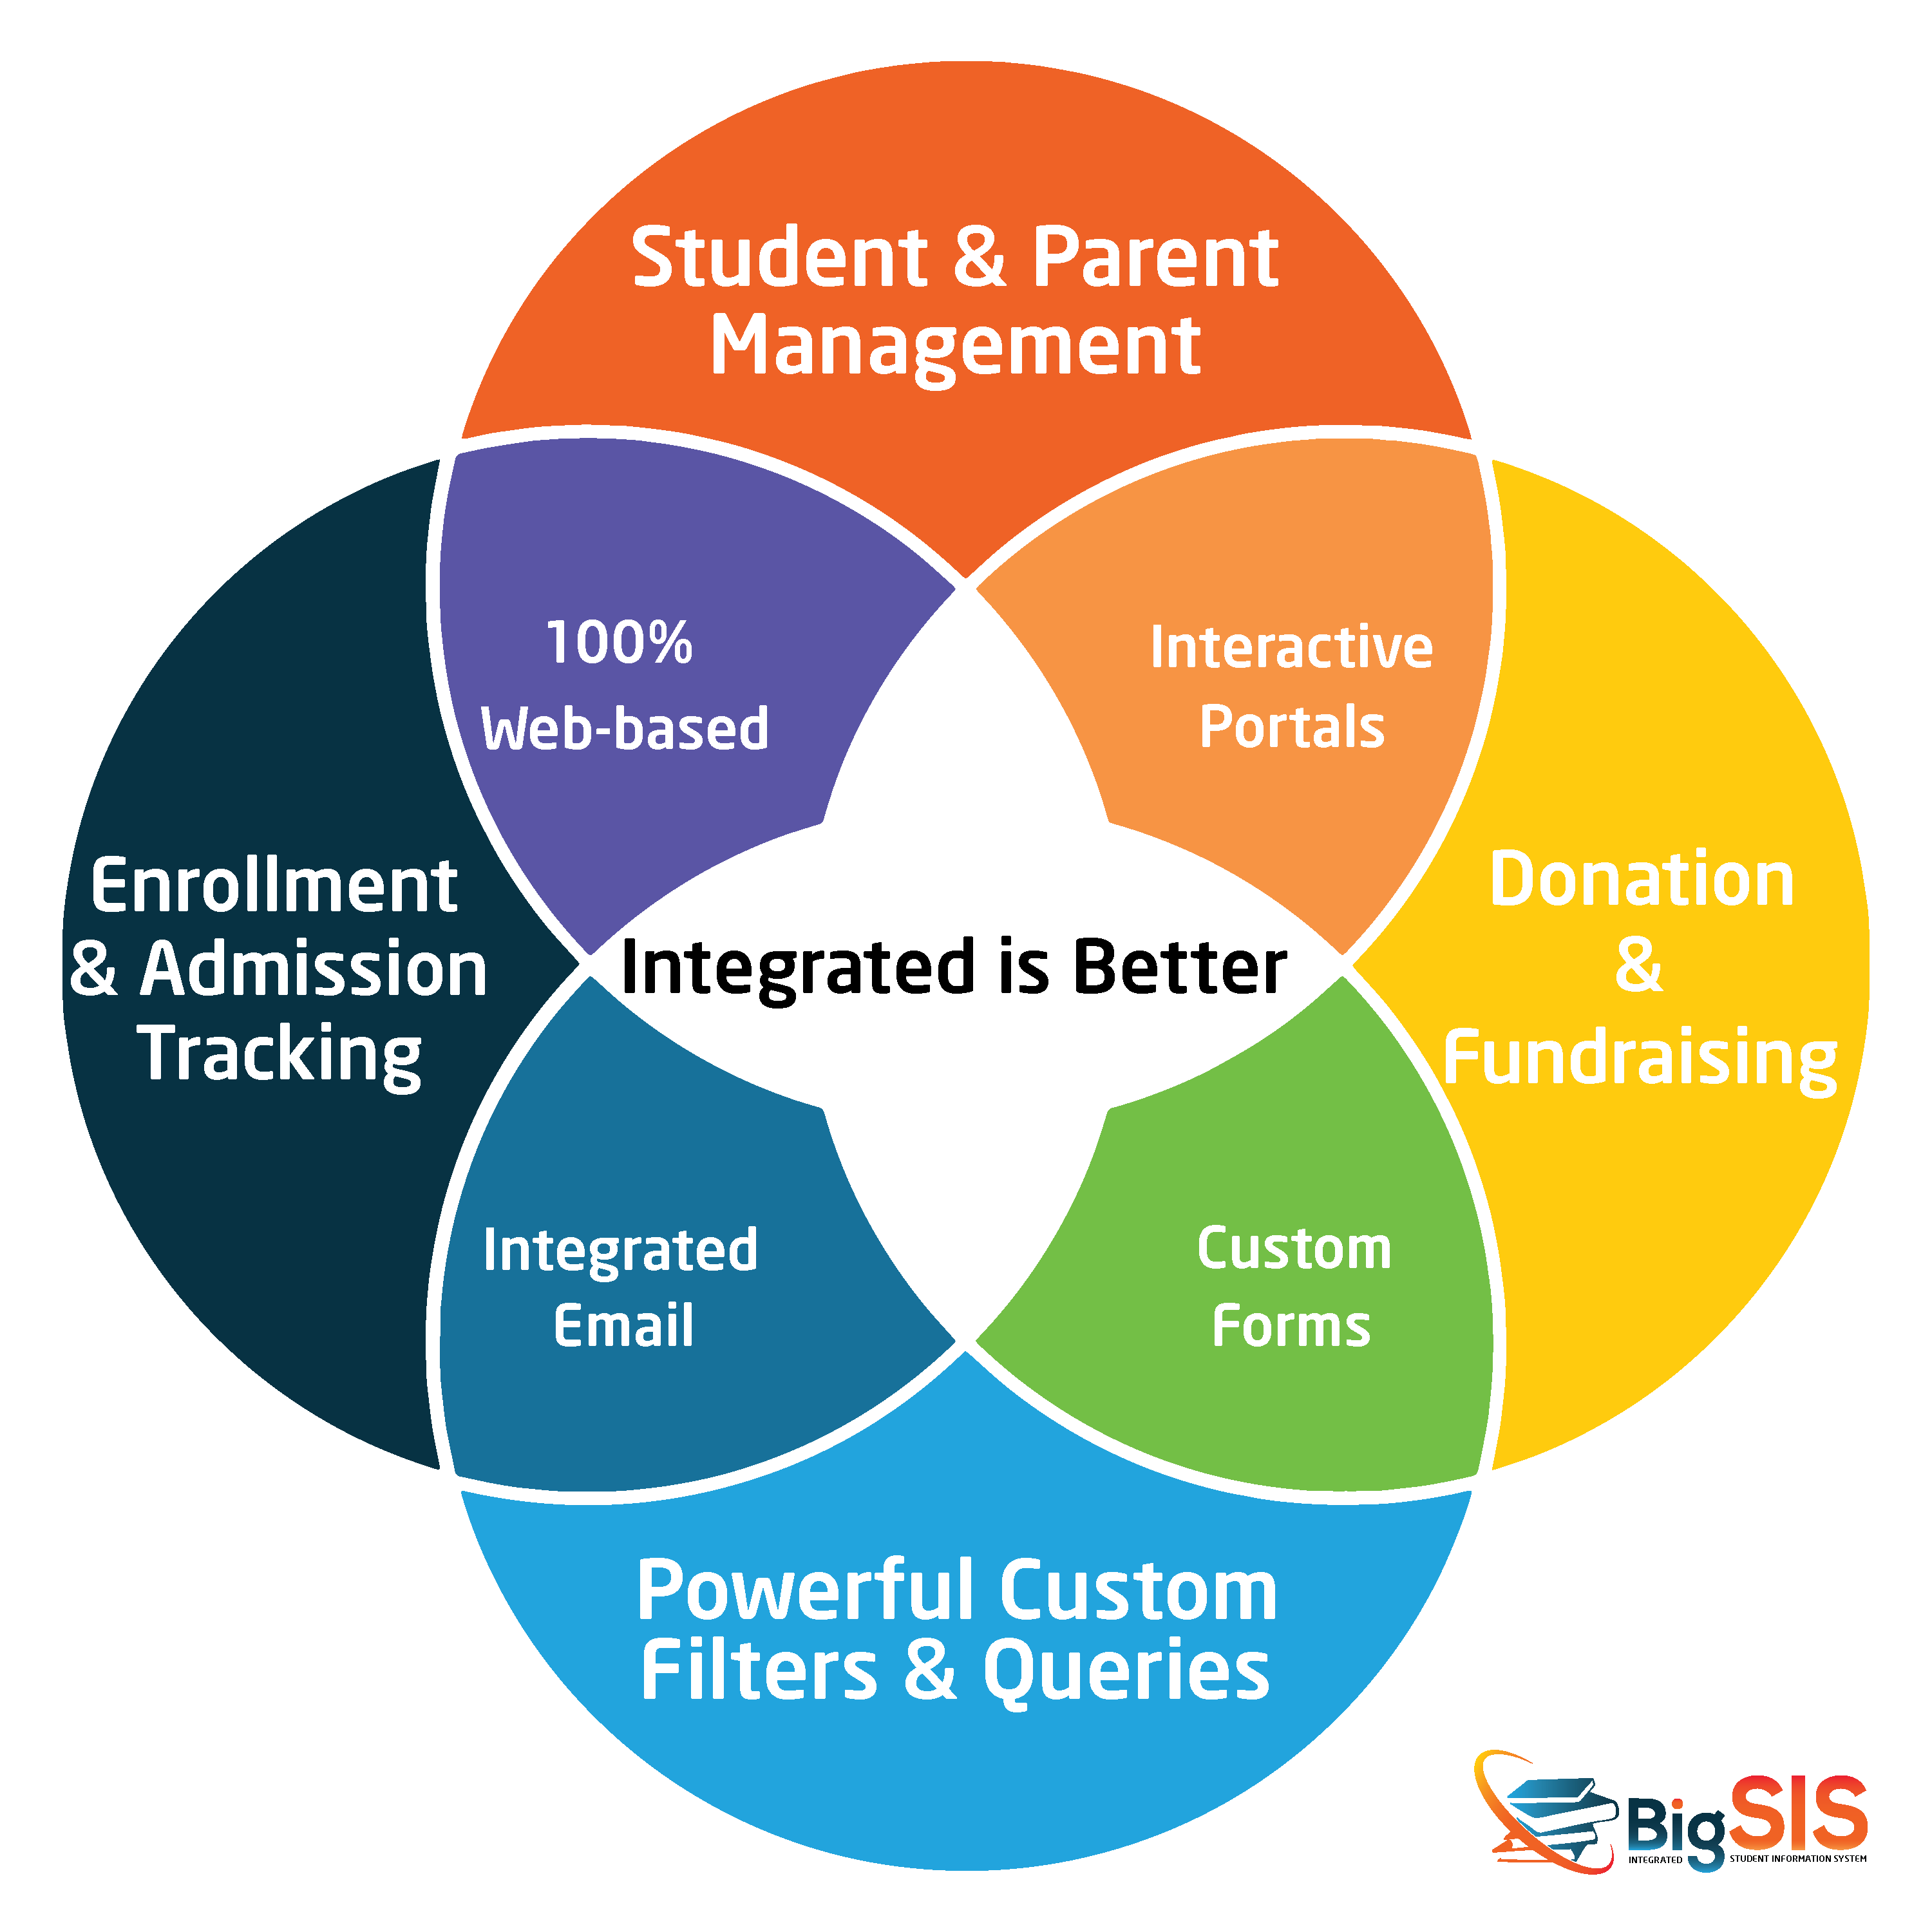 student information and management system The industry's best school information system is better than ever, because it's now part of one of the most comprehensive suites of school solutions available for more information on solutions that will help you elevate the education experience for your administration, teachers, and families, visit the new facts site.